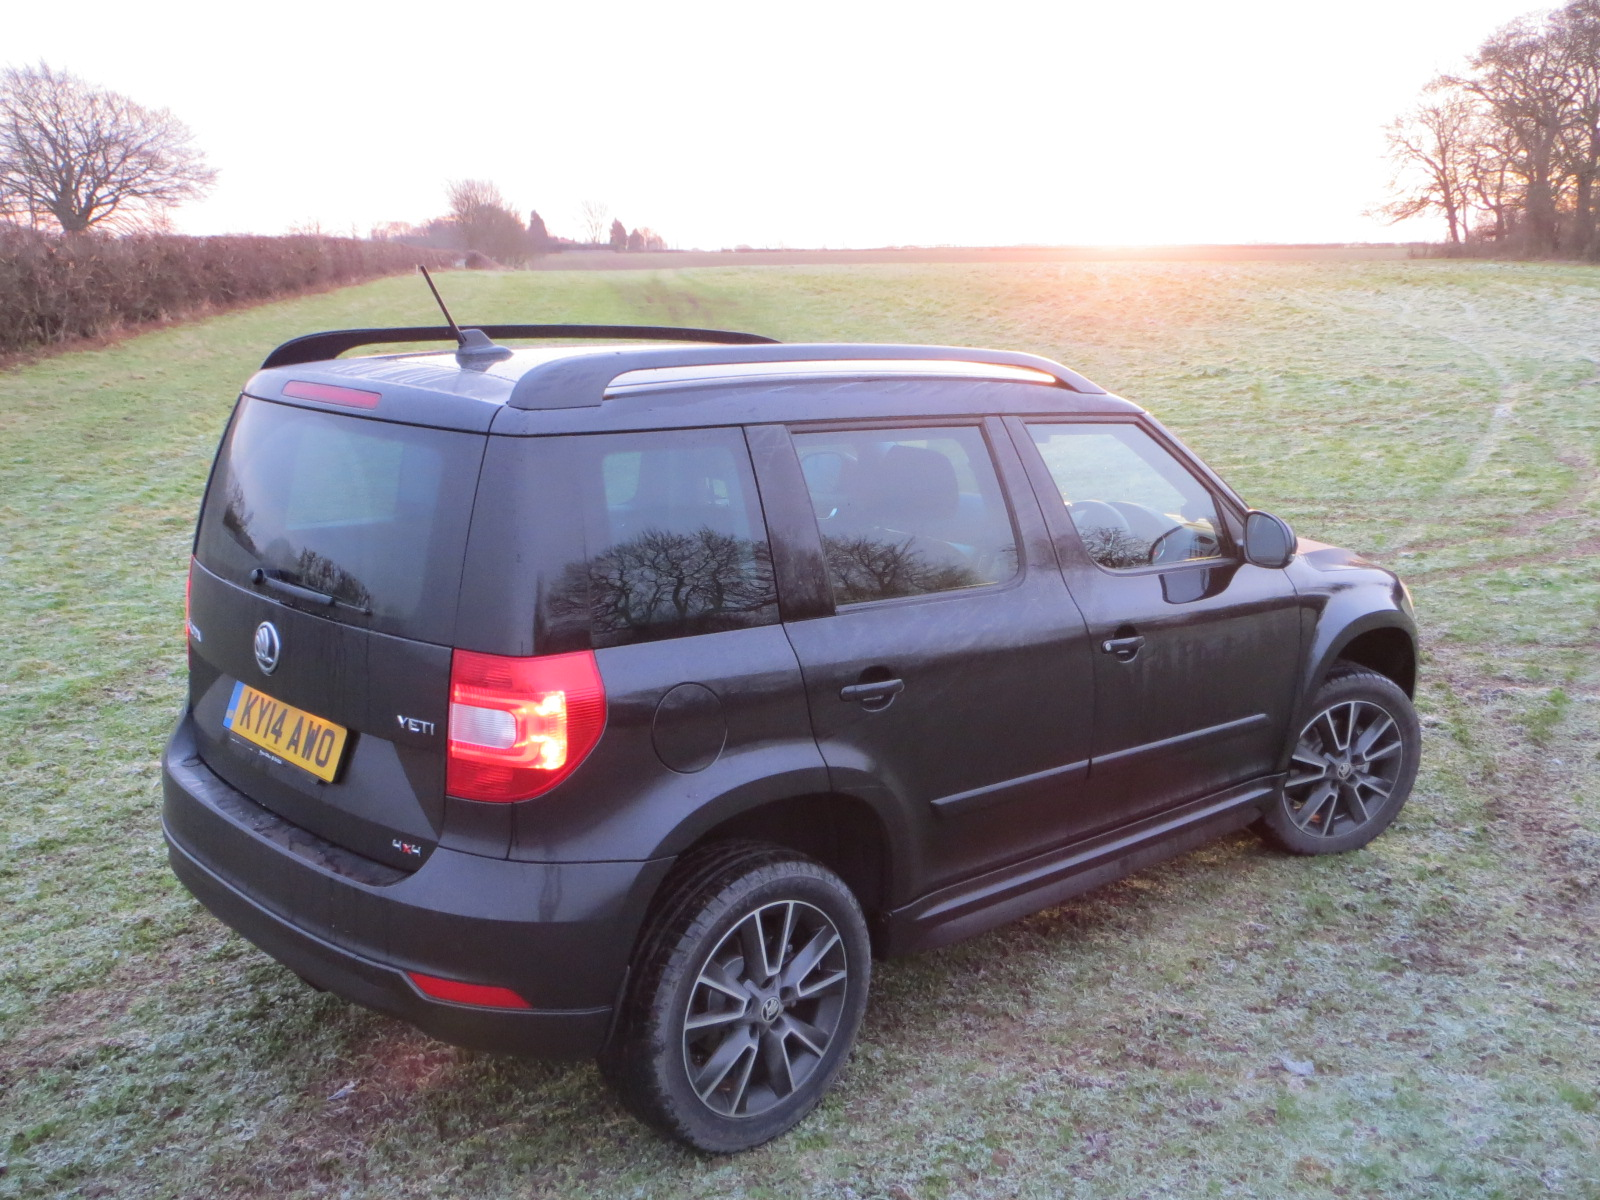 skoda yeti black edition 4x4 2 0 tdi 140ps road test report and review wheel world reviews. Black Bedroom Furniture Sets. Home Design Ideas